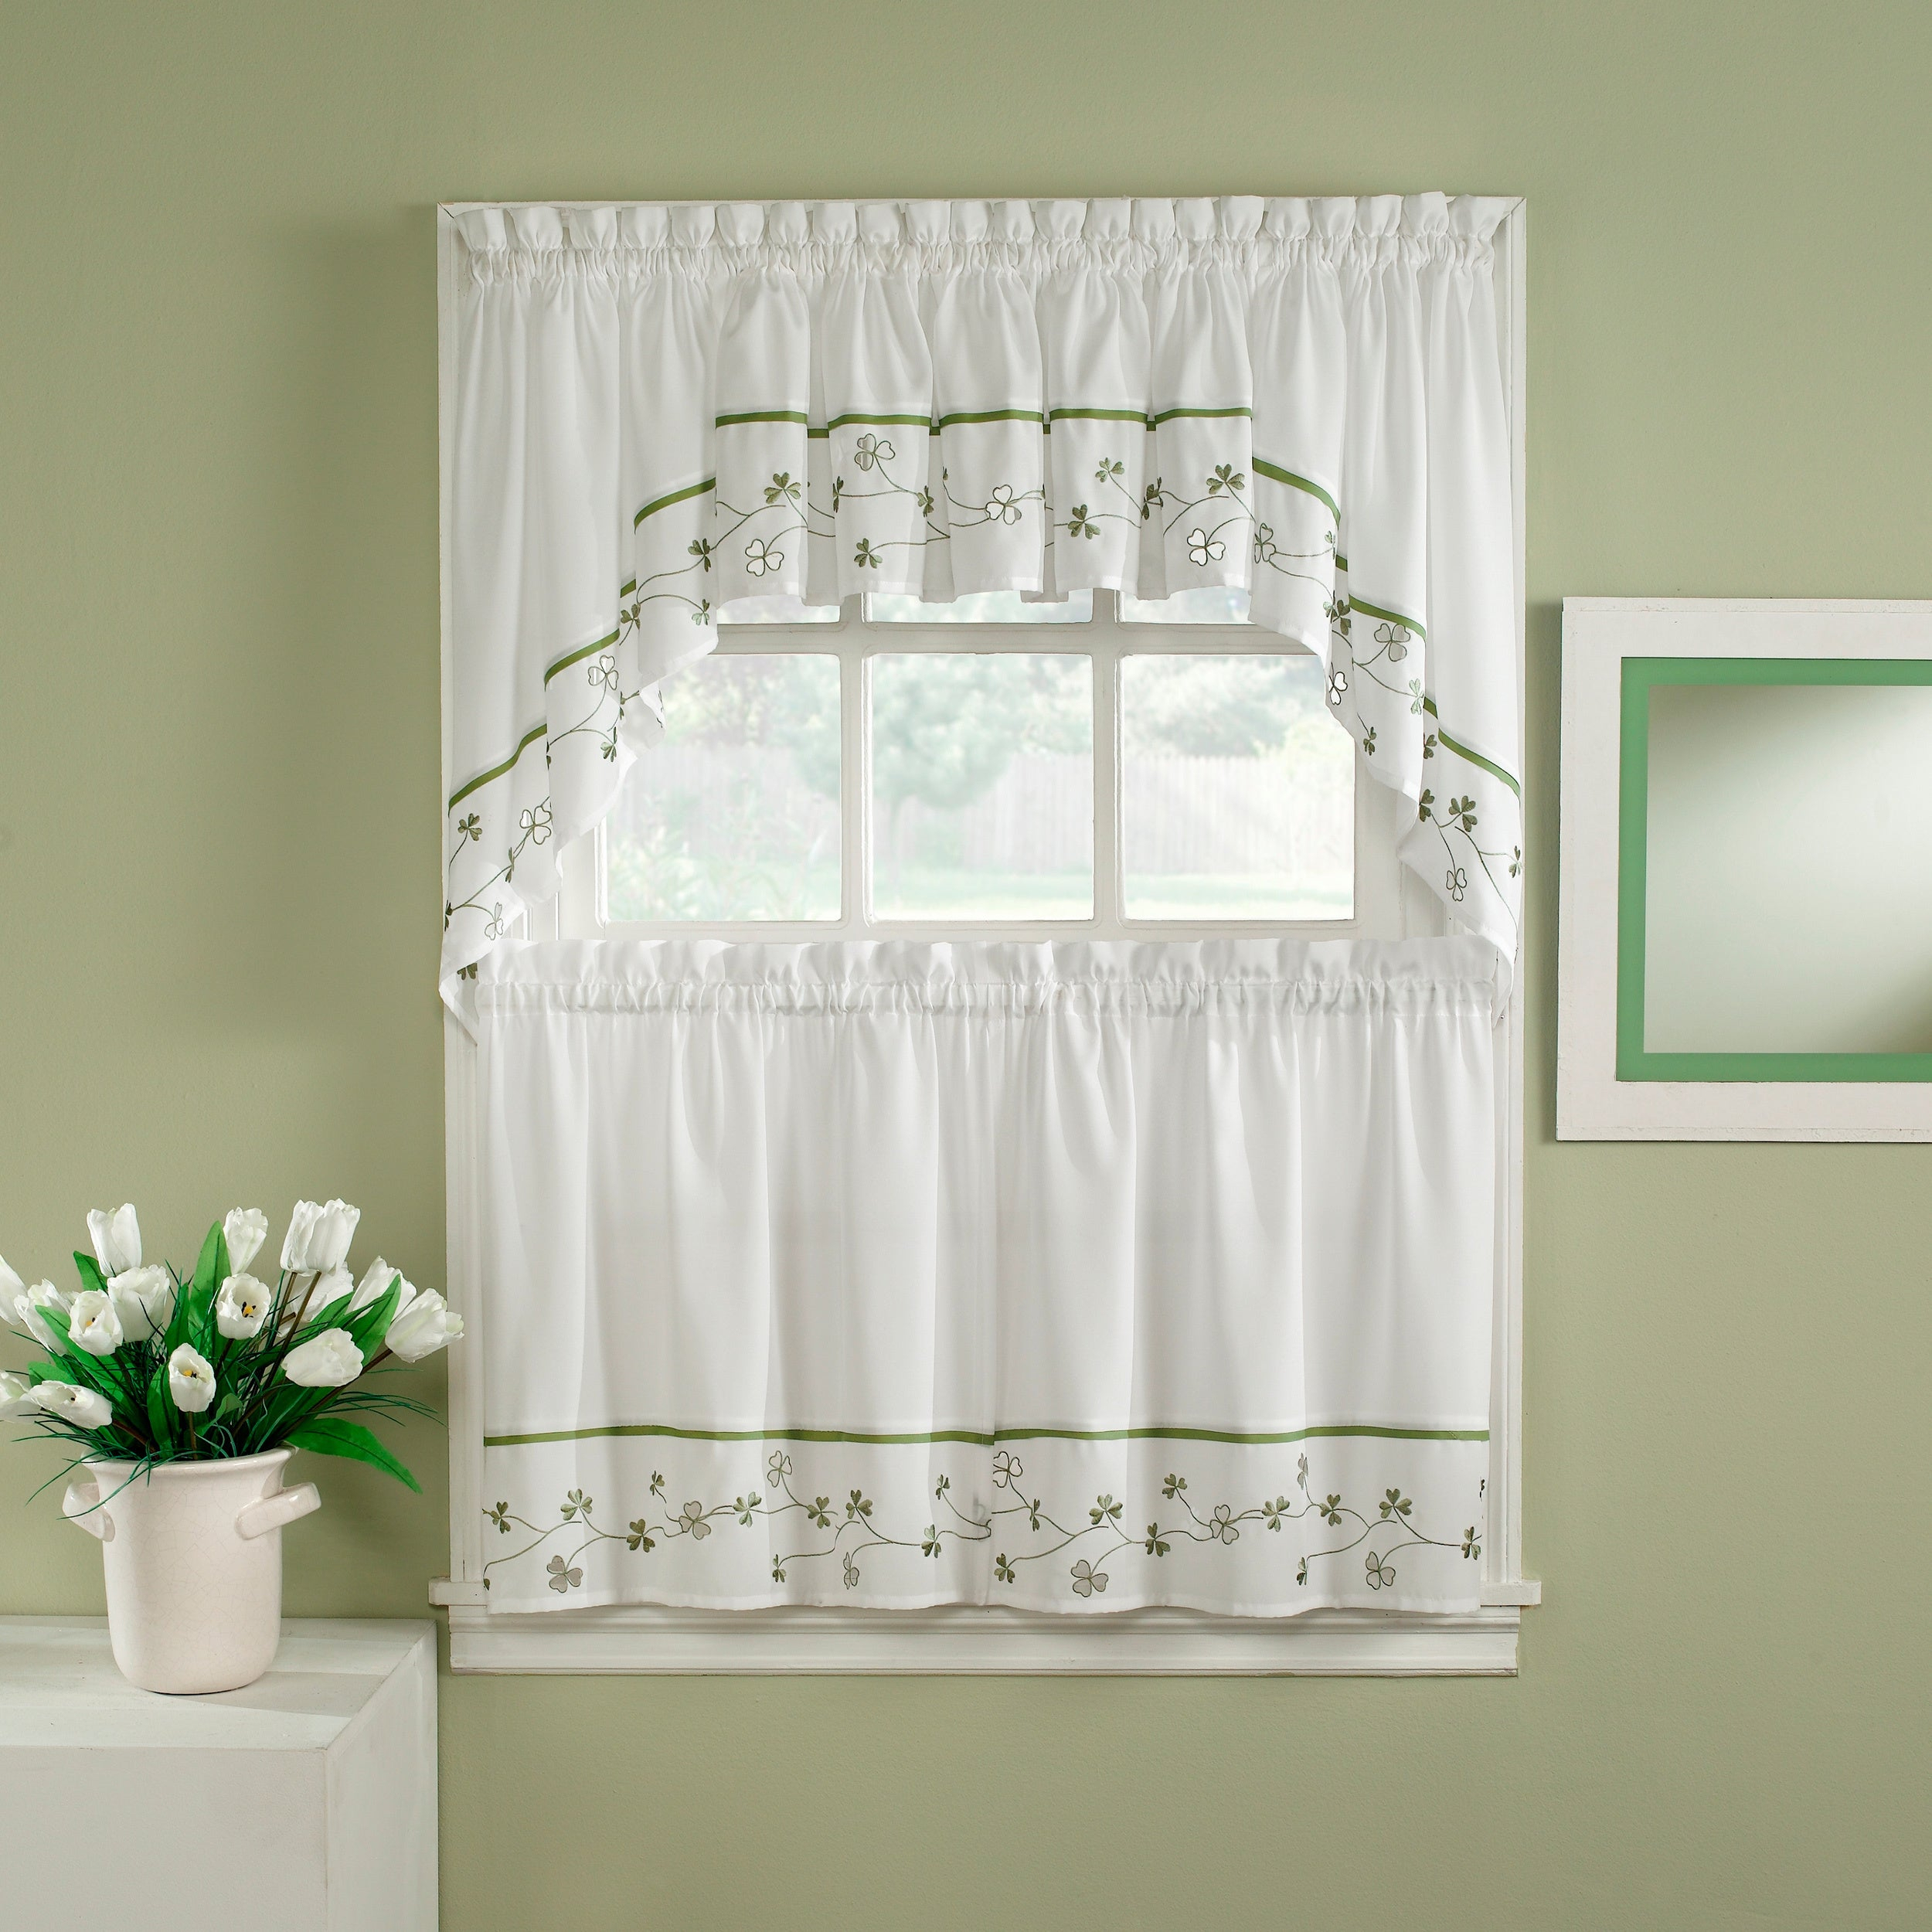 Clover Green/ White 5 Piece Curtain Tier And Swag Set With Regard To Cotton Lace 5 Piece Window Tier And Swag Sets (View 8 of 20)